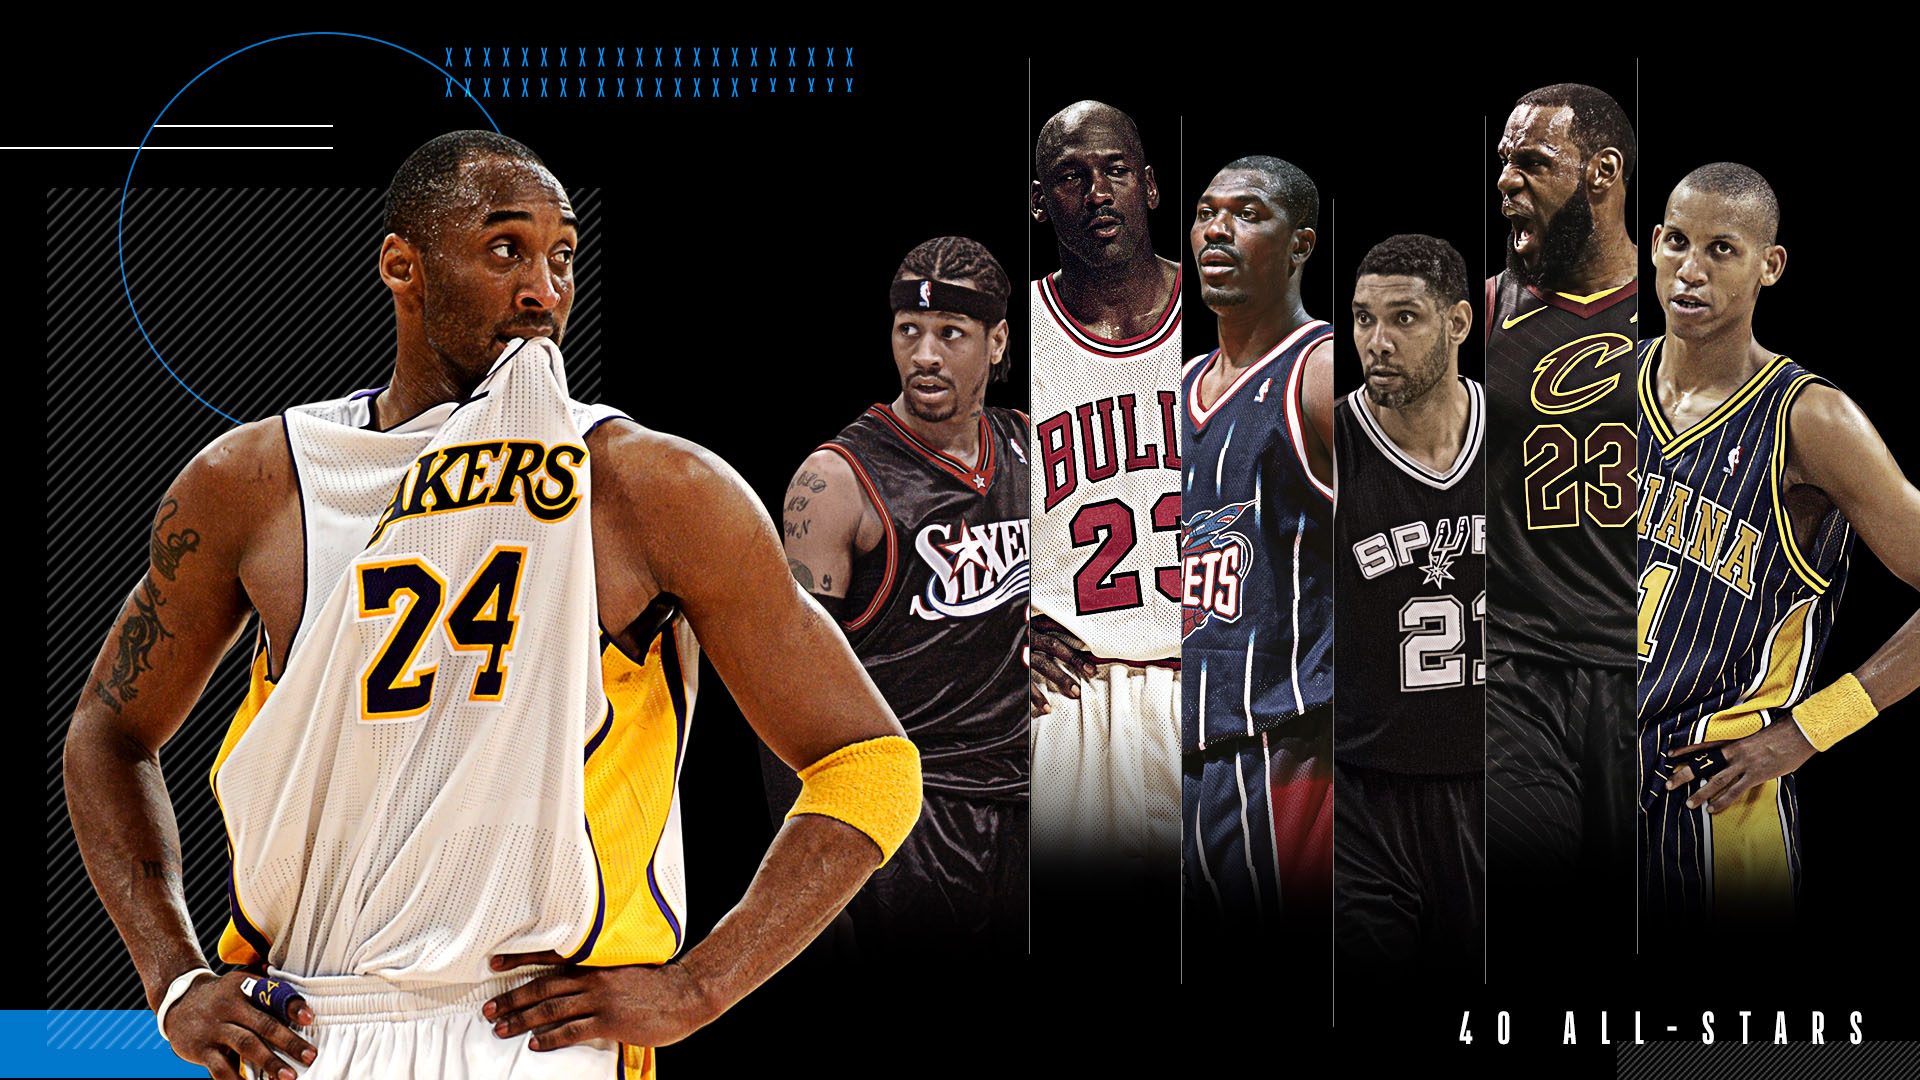 8c7a9d1a1d8 Details behind Kobe Bryant s biggest individual rivalries